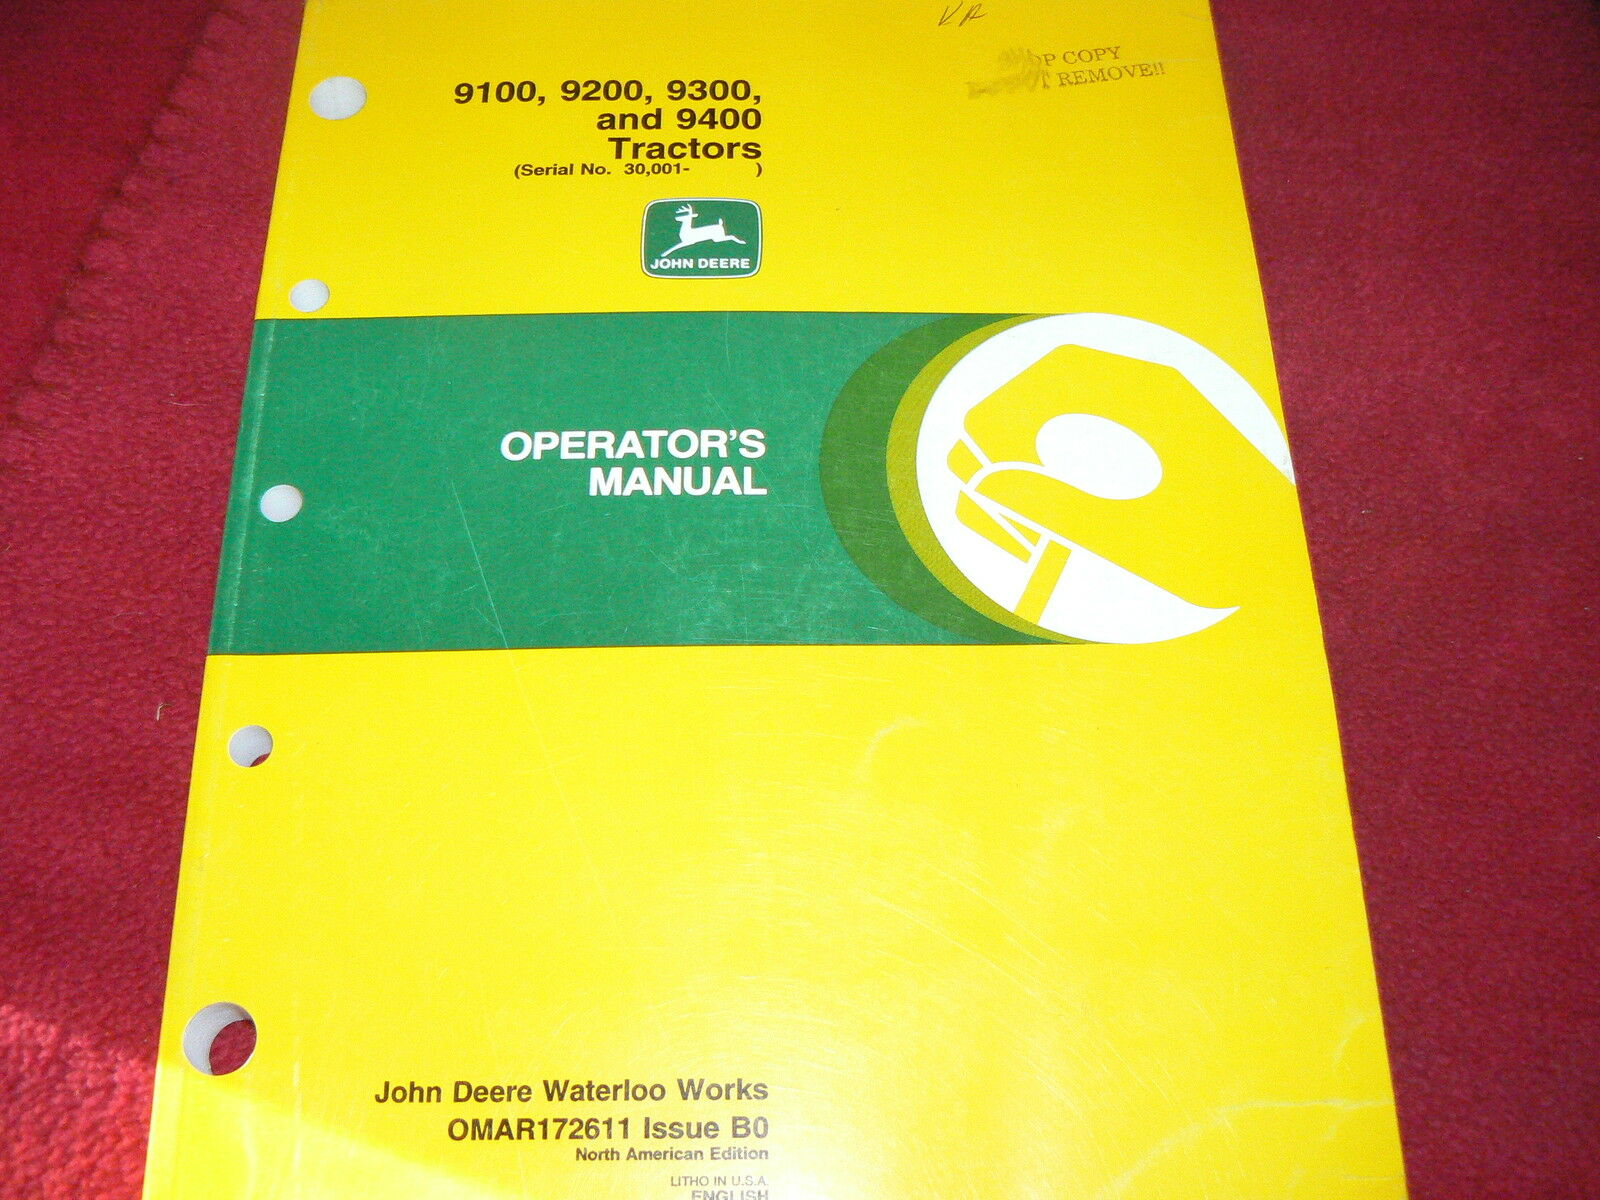 John Deere 9100 9200 9300 9400 Tractor Operator's Manual 1 of 1Only 1  available ...